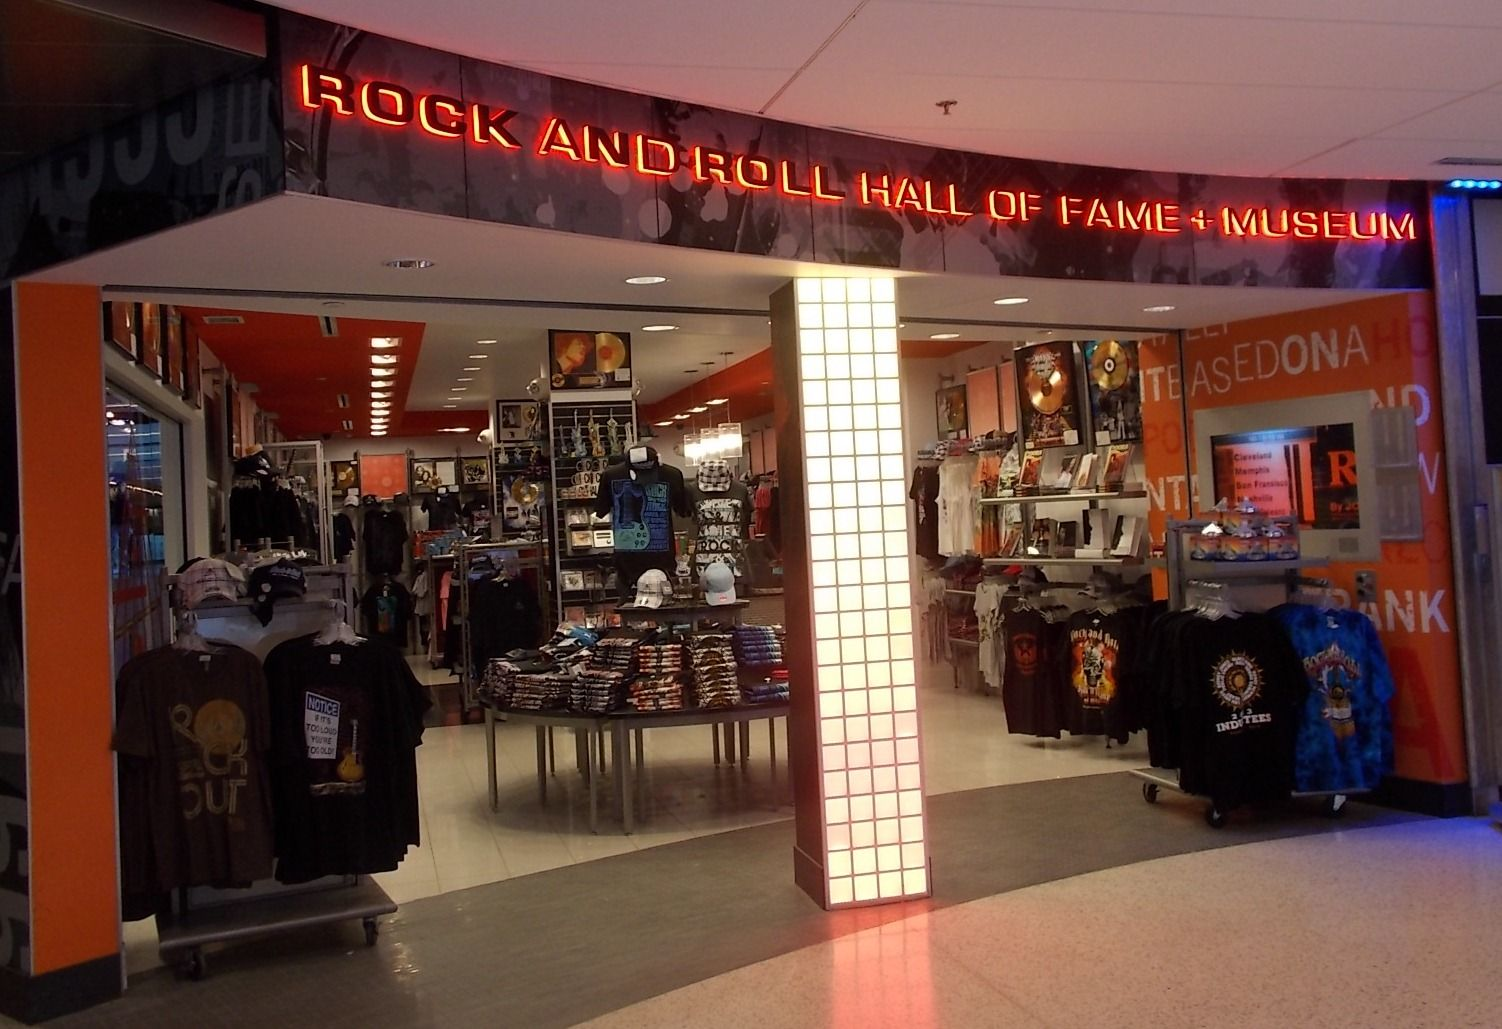 rock and roll hall of fame and museum airport storefront